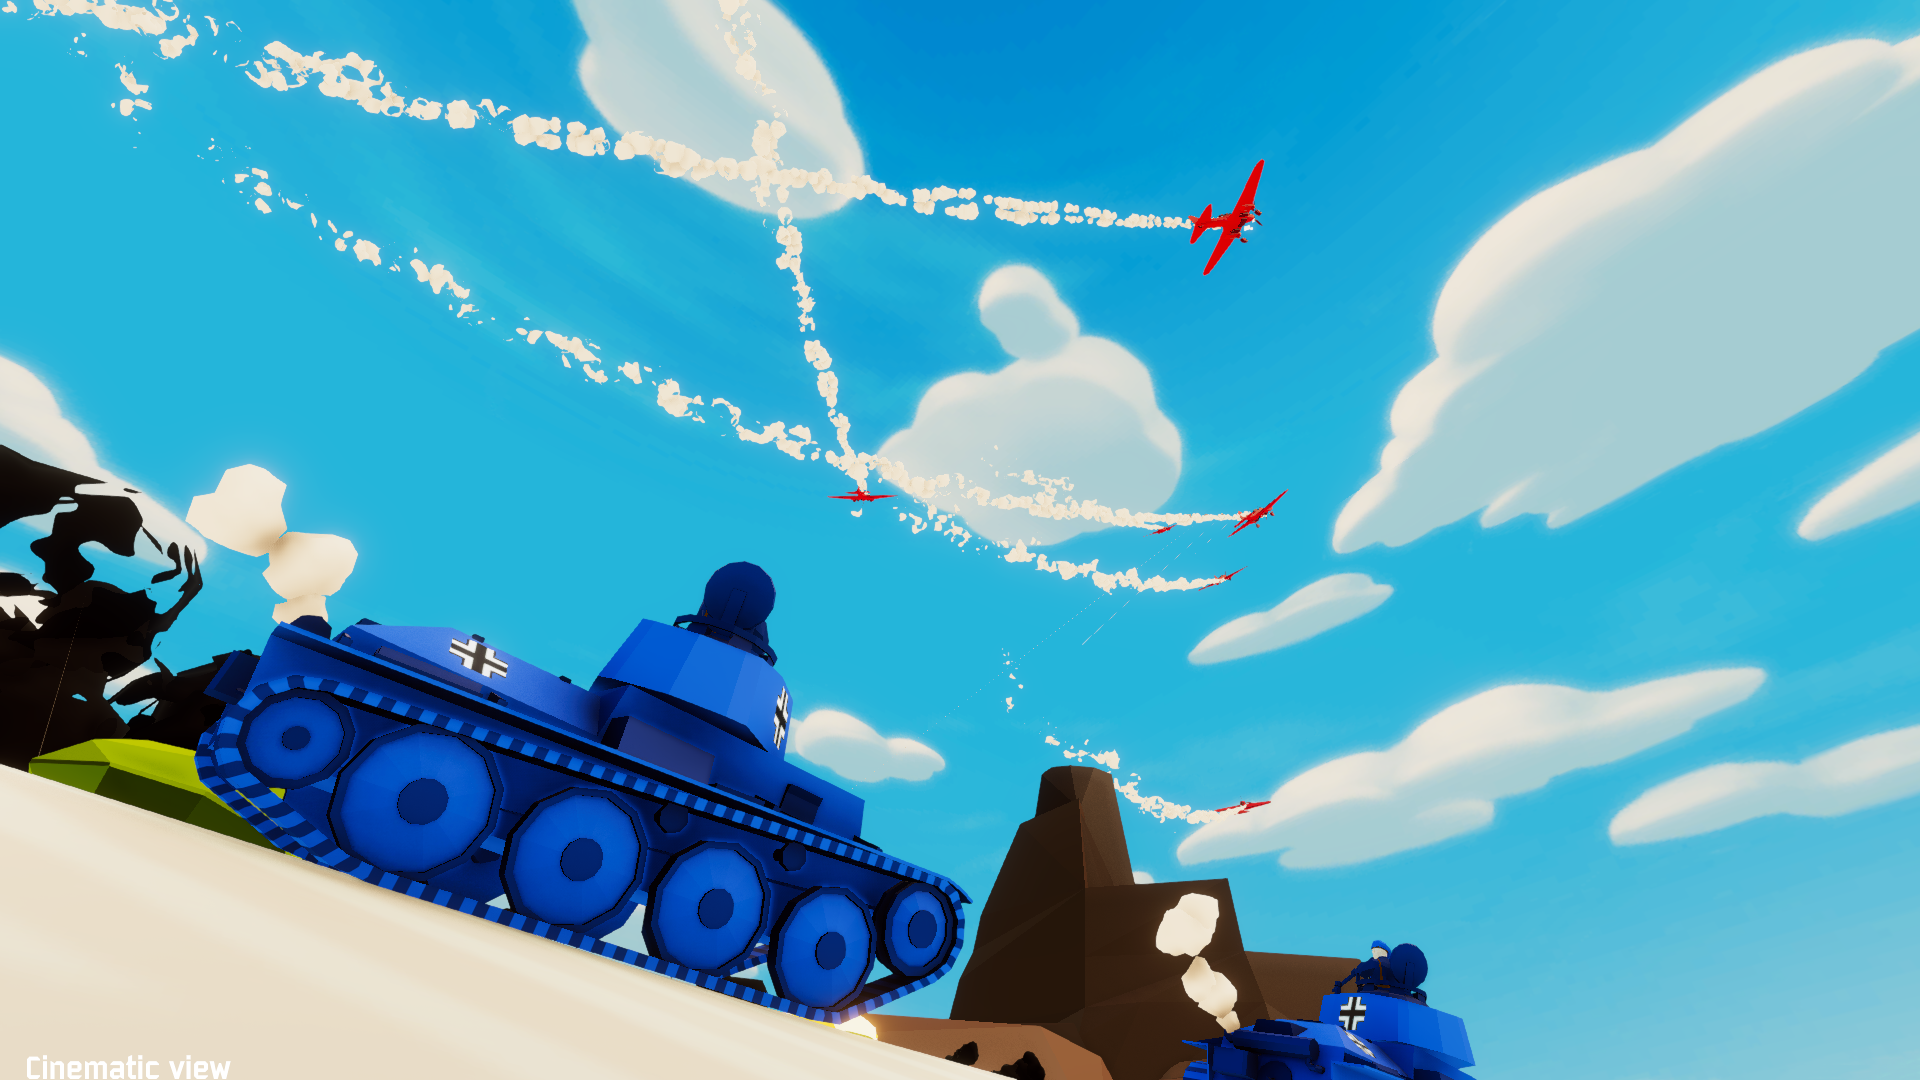 Physics-Based Total Tank Simulator Coming to Steam in 2020